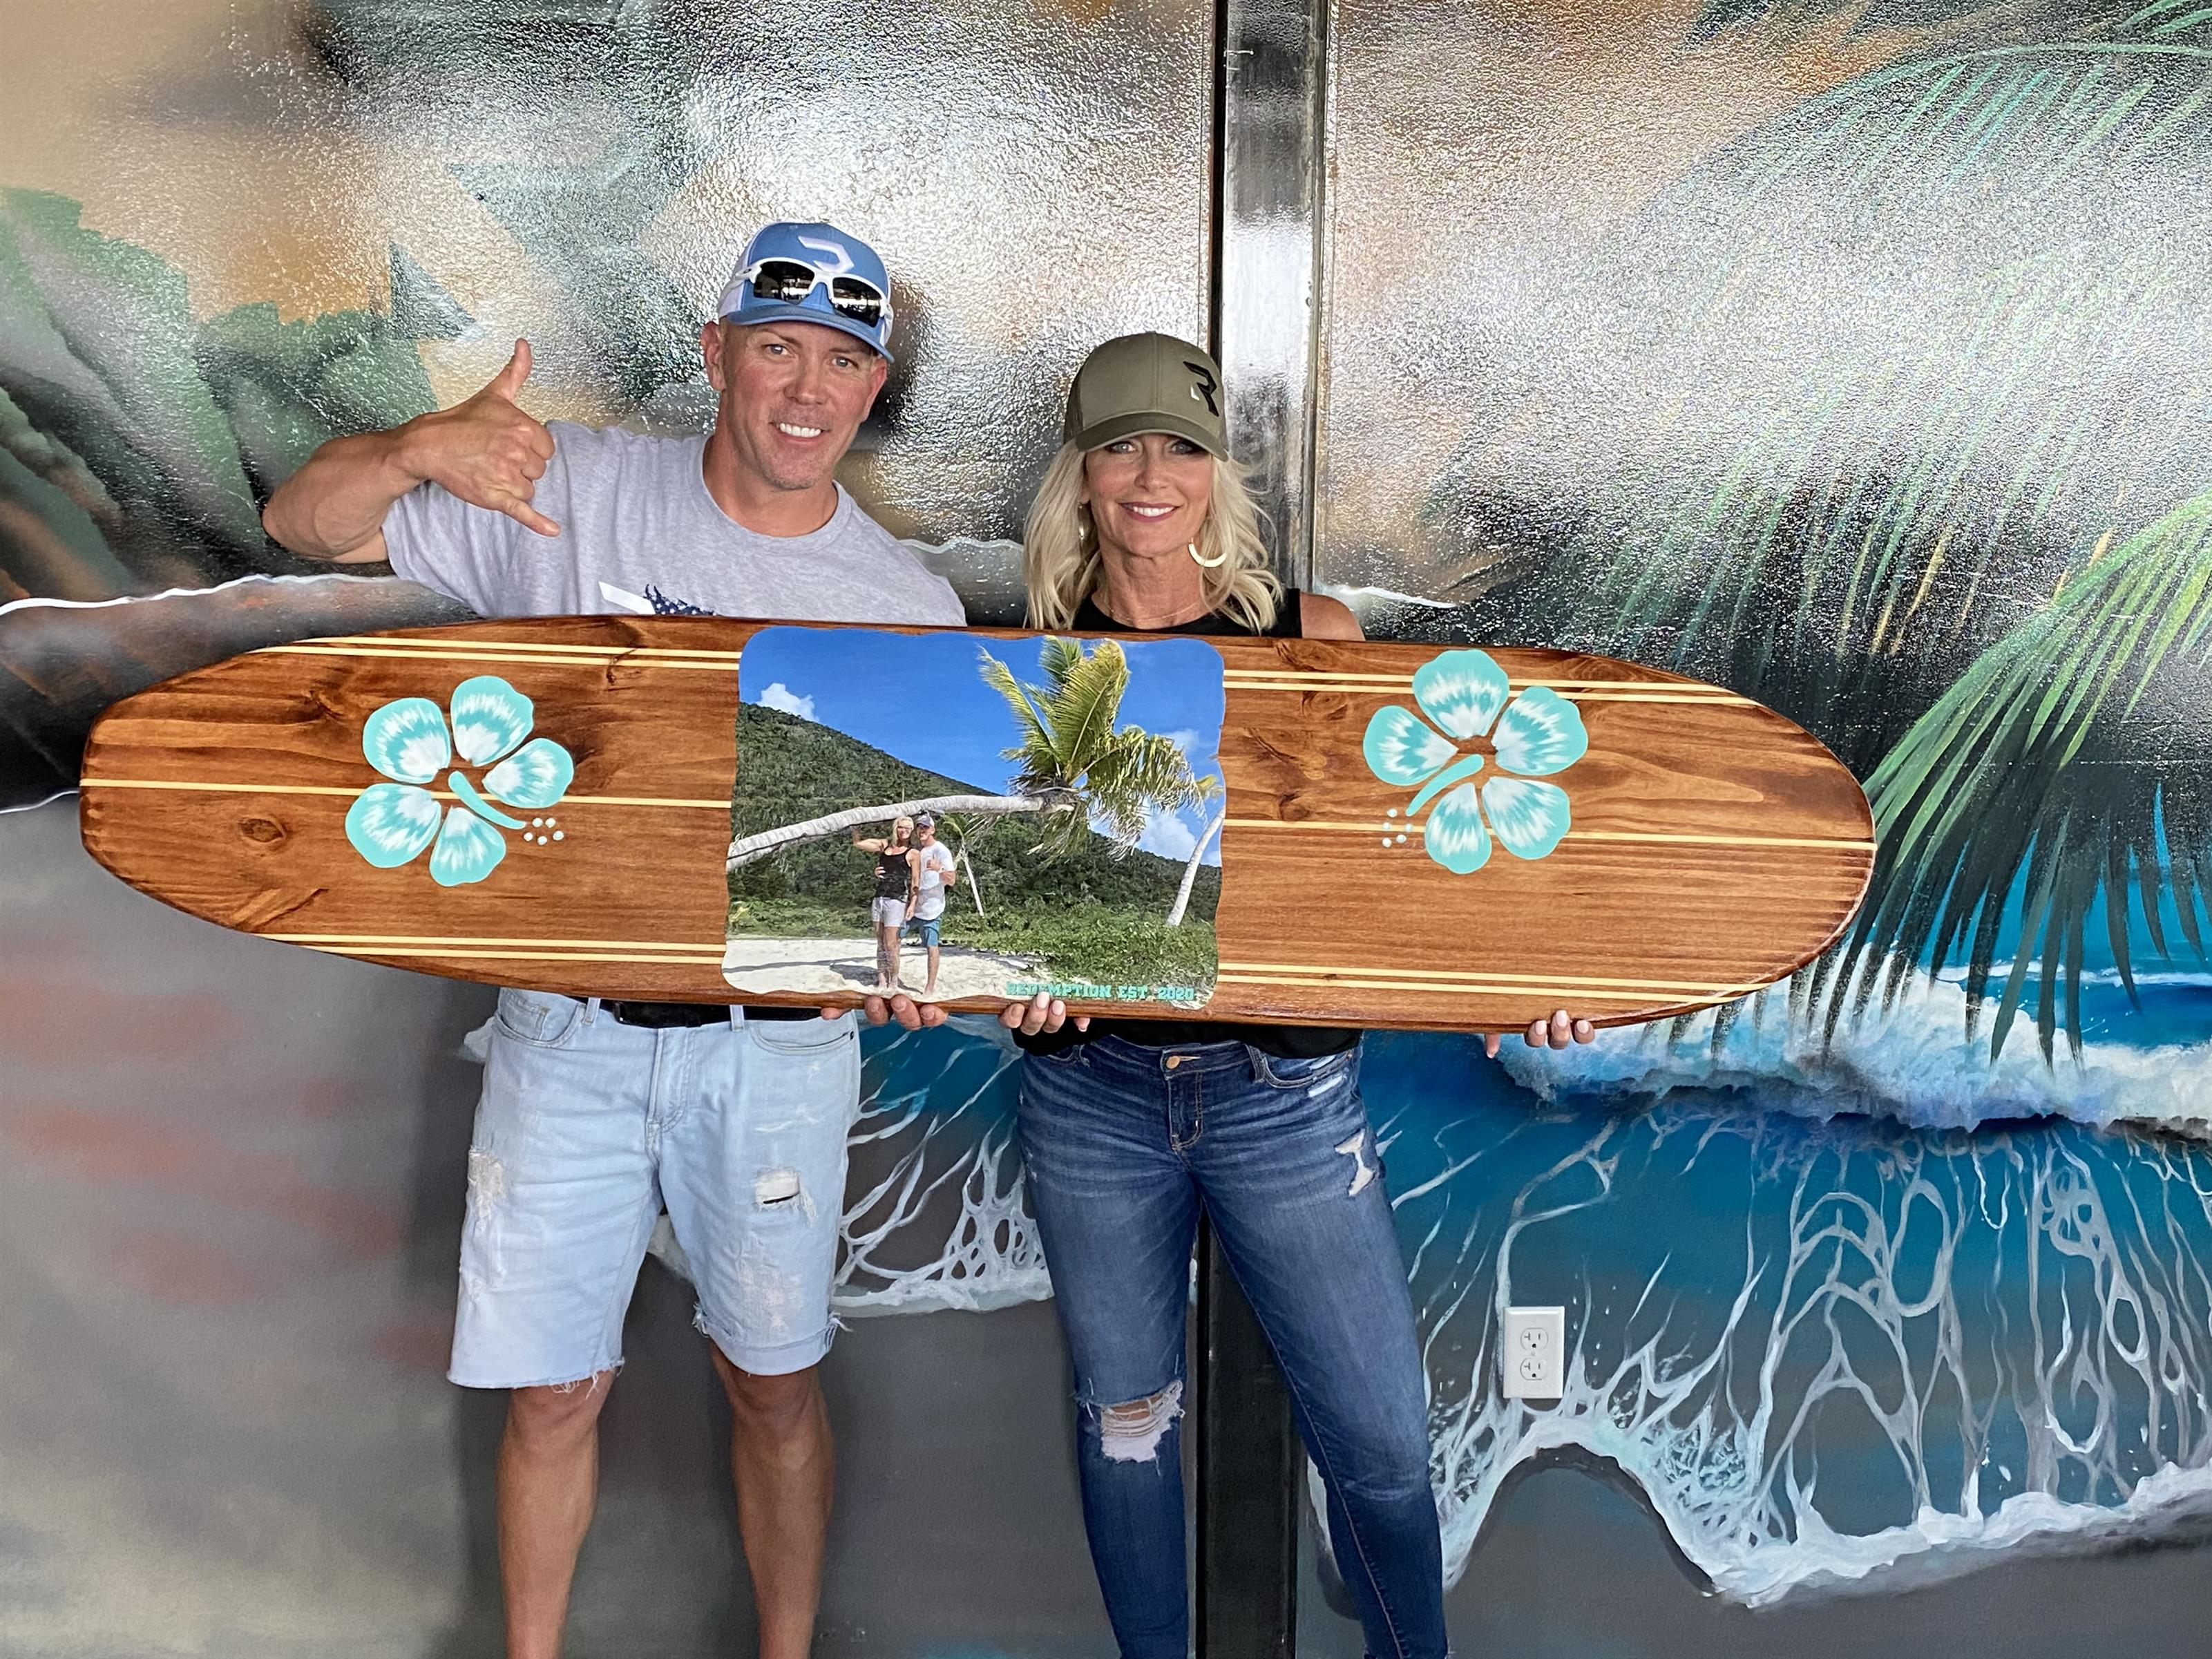 Owners and staff with Surfboard and photo of island